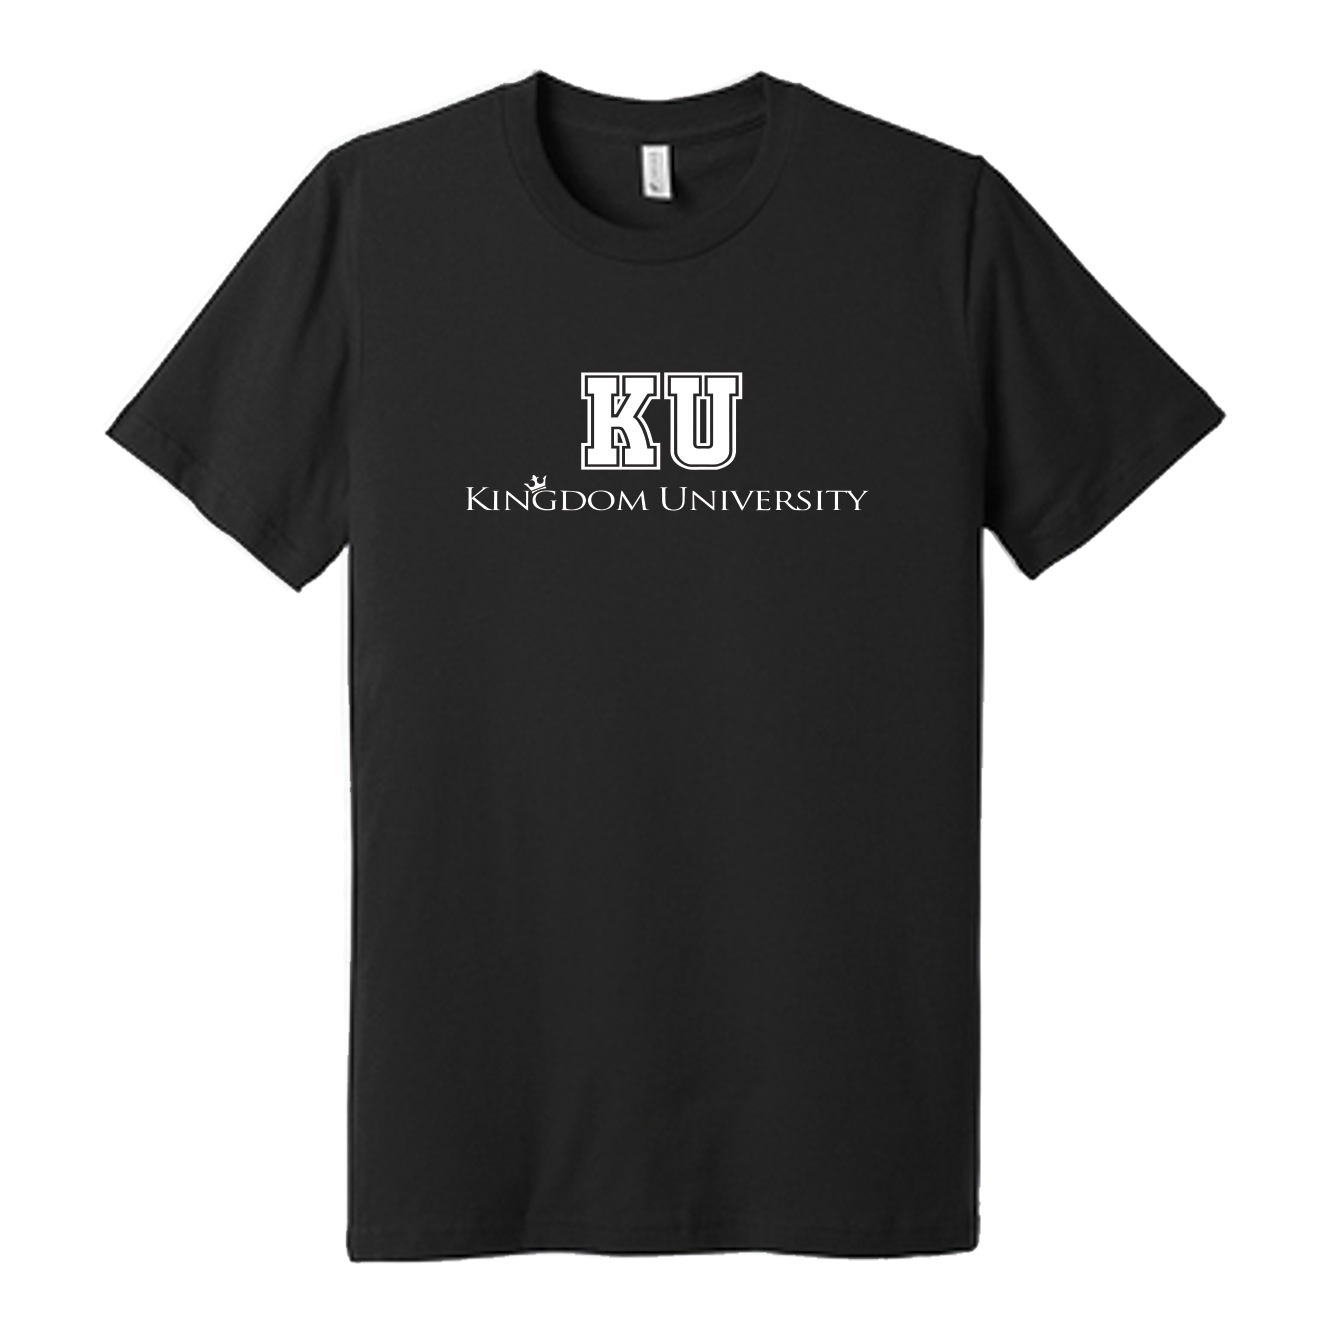 Blk Shirt Kingdom University